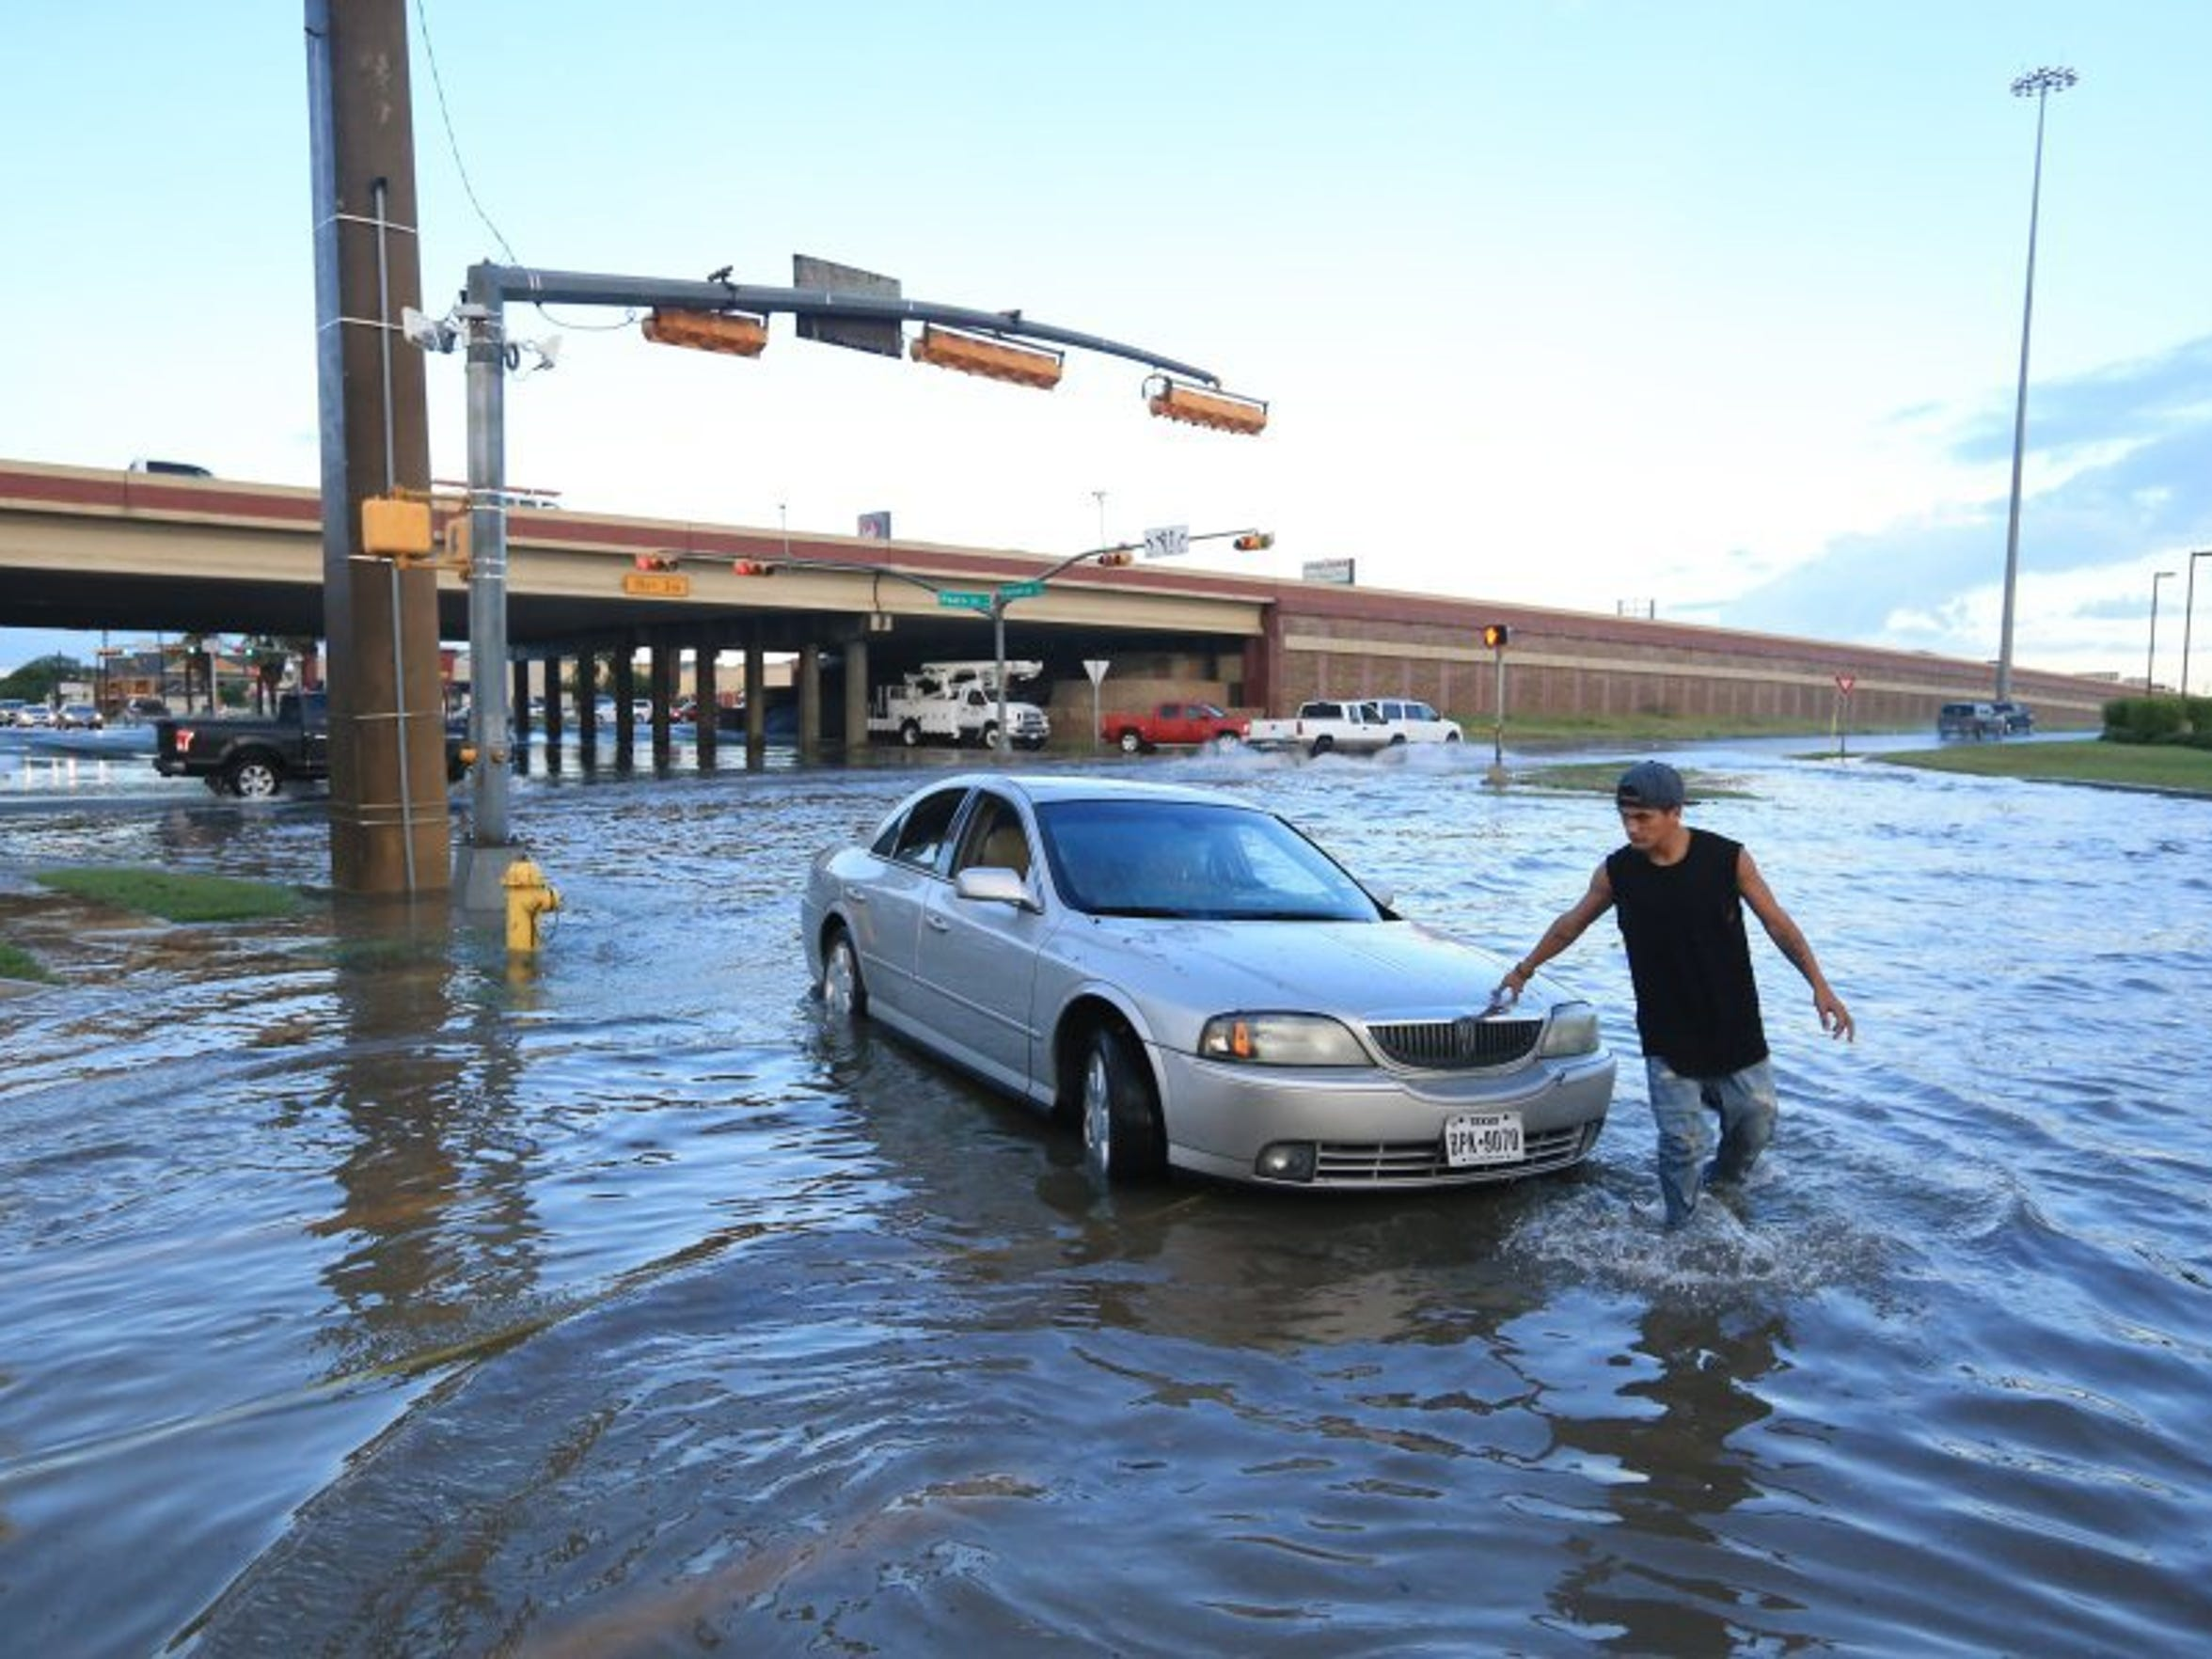 Rachel Denny Clow/Caller-Times  In this 2016 file photo, Steven Galindo walks stands alongside his car as floodwaters inundate Kostoryz Road. Federal flood maps predict damages based on rainfall totals, but don't account for storm water system capacity, officials say.